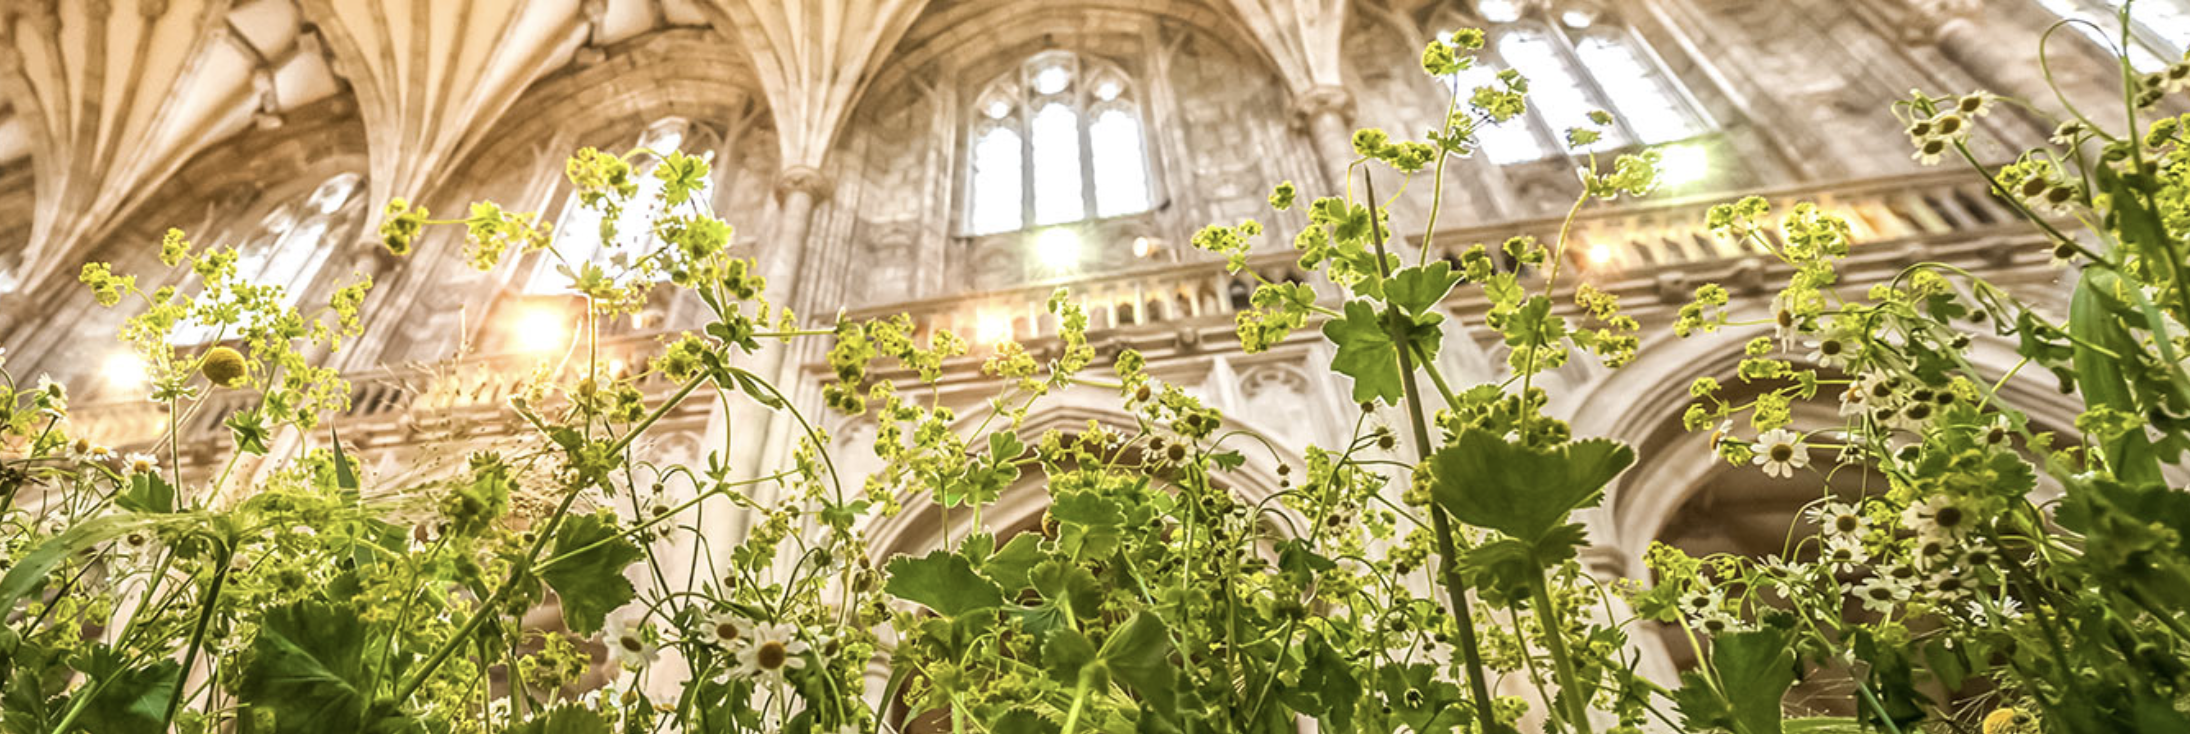 Greenery inside cathedral